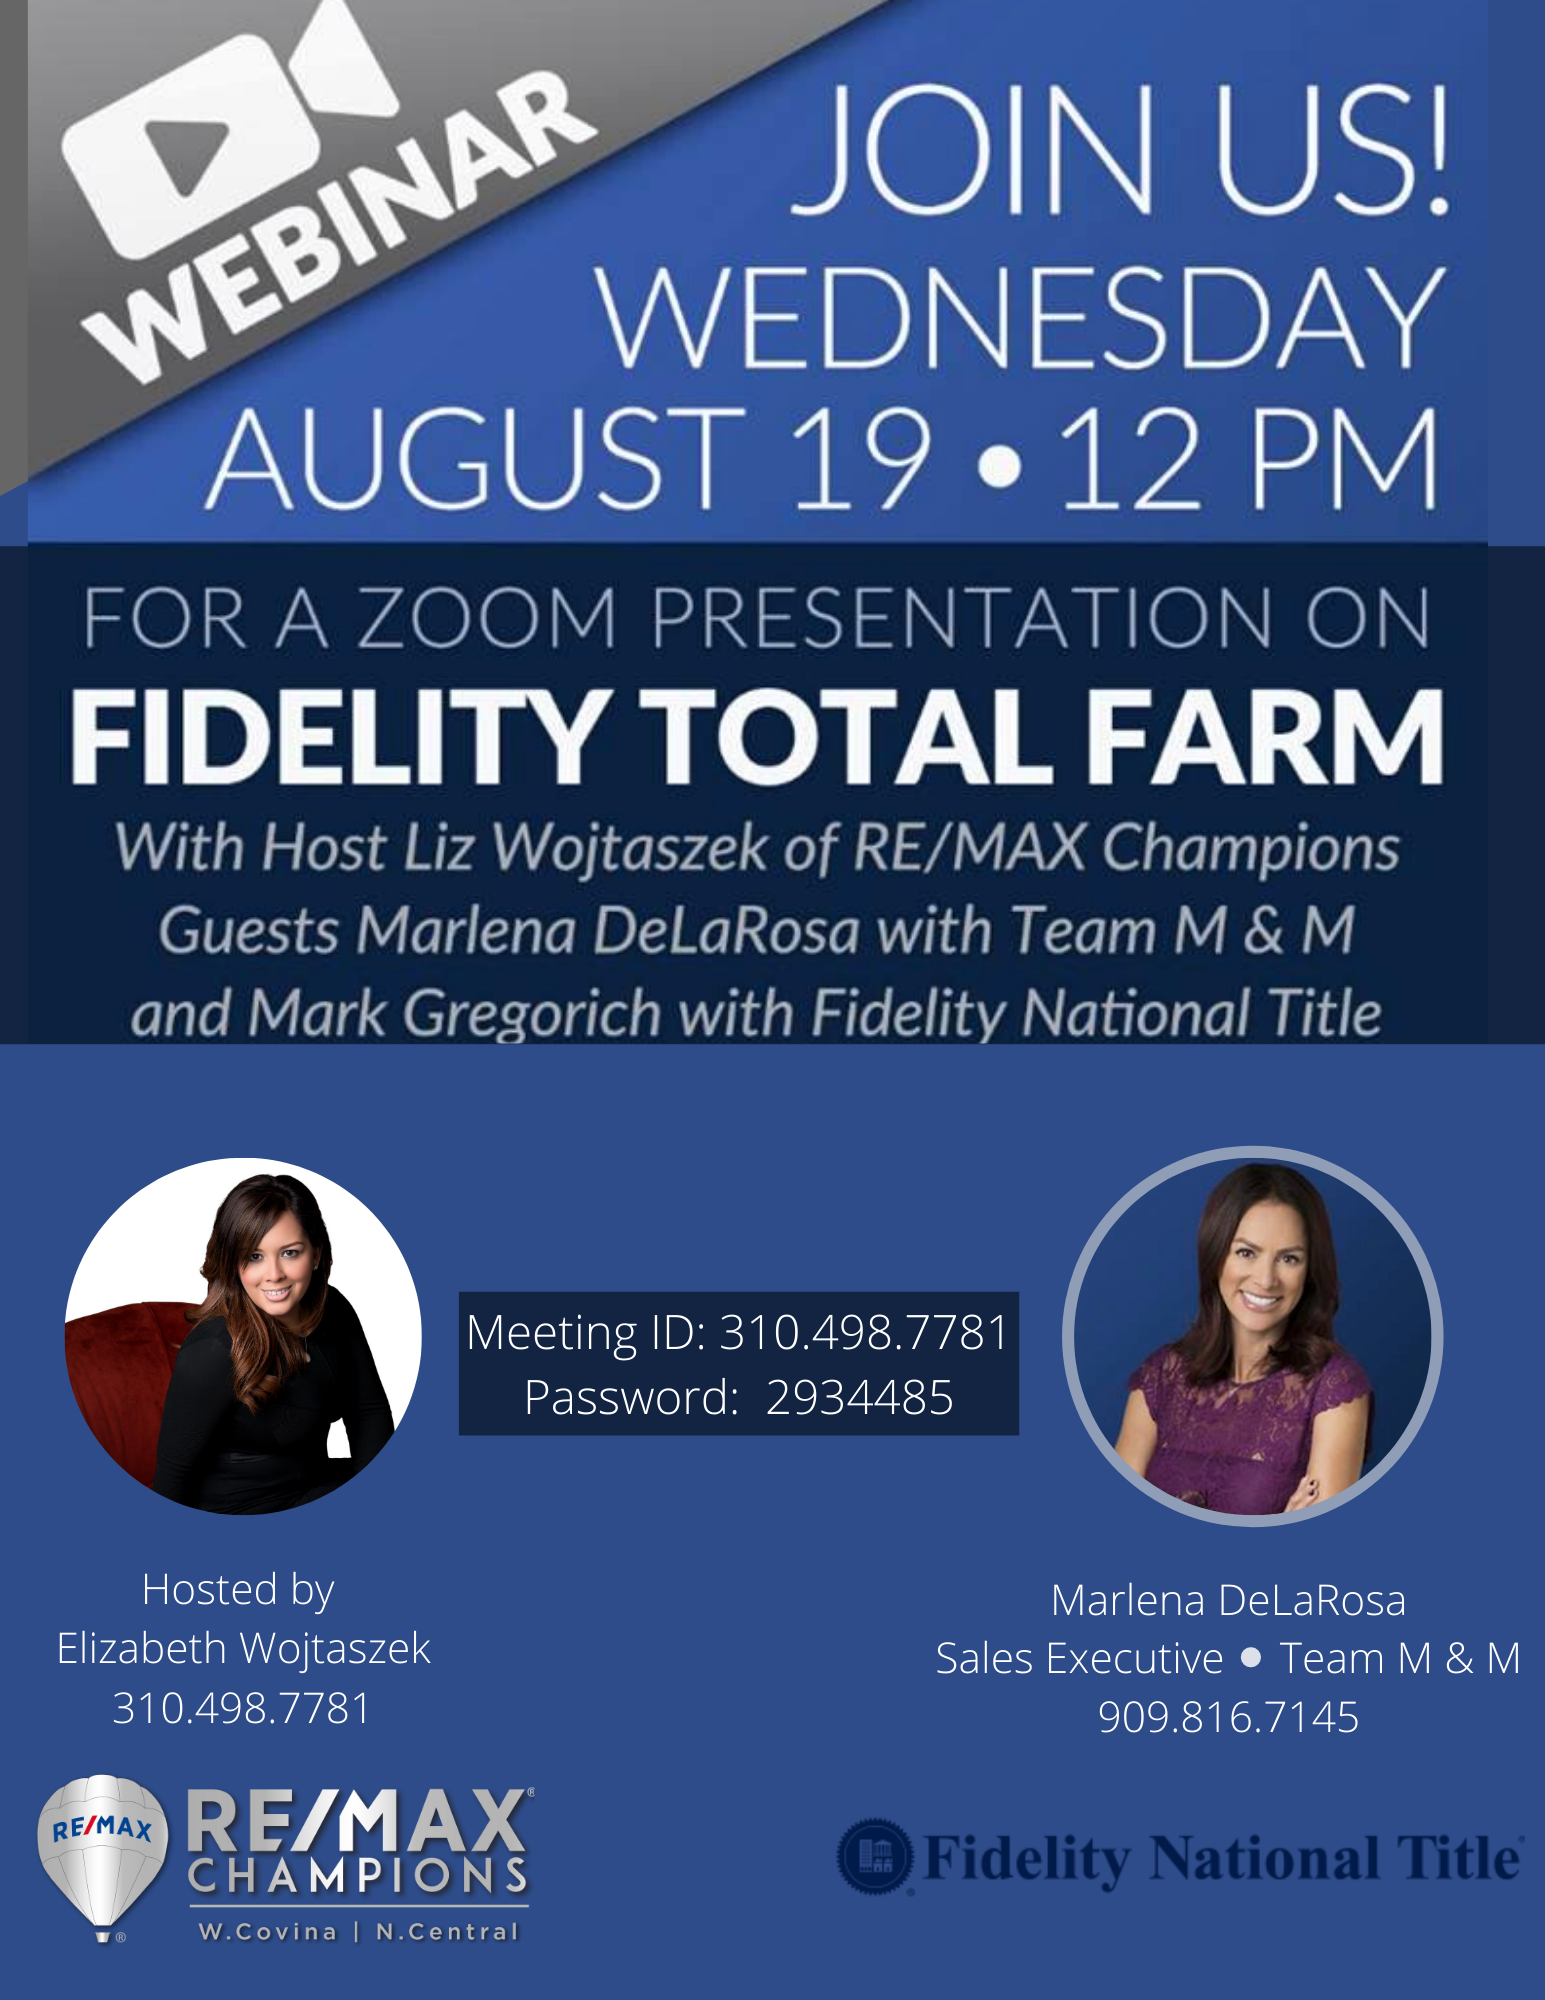 Fidelity Total Farm